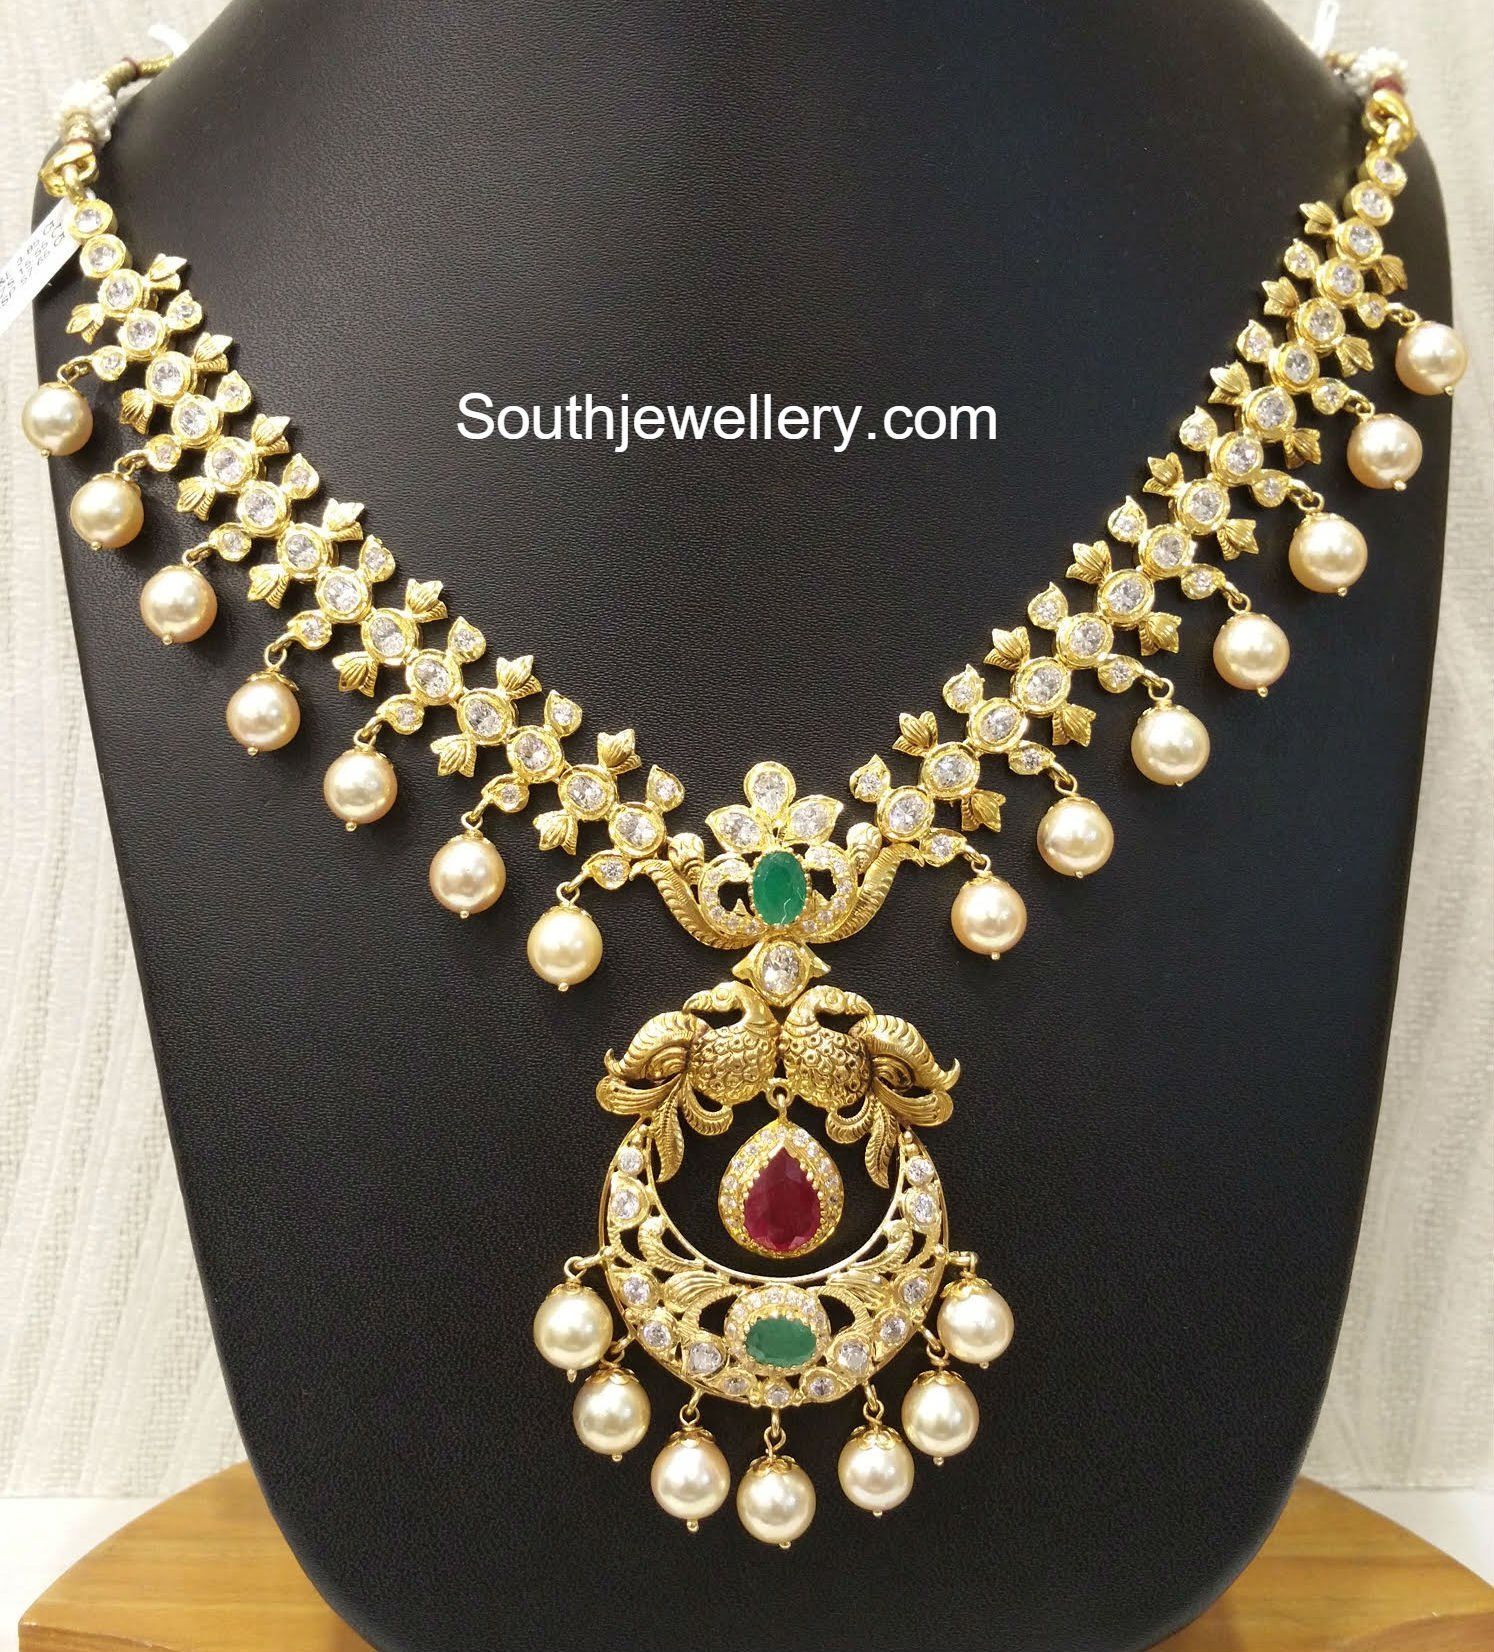 Indian Gold Jewellery Necklace Sets Google Search: Addicted To Jewelry